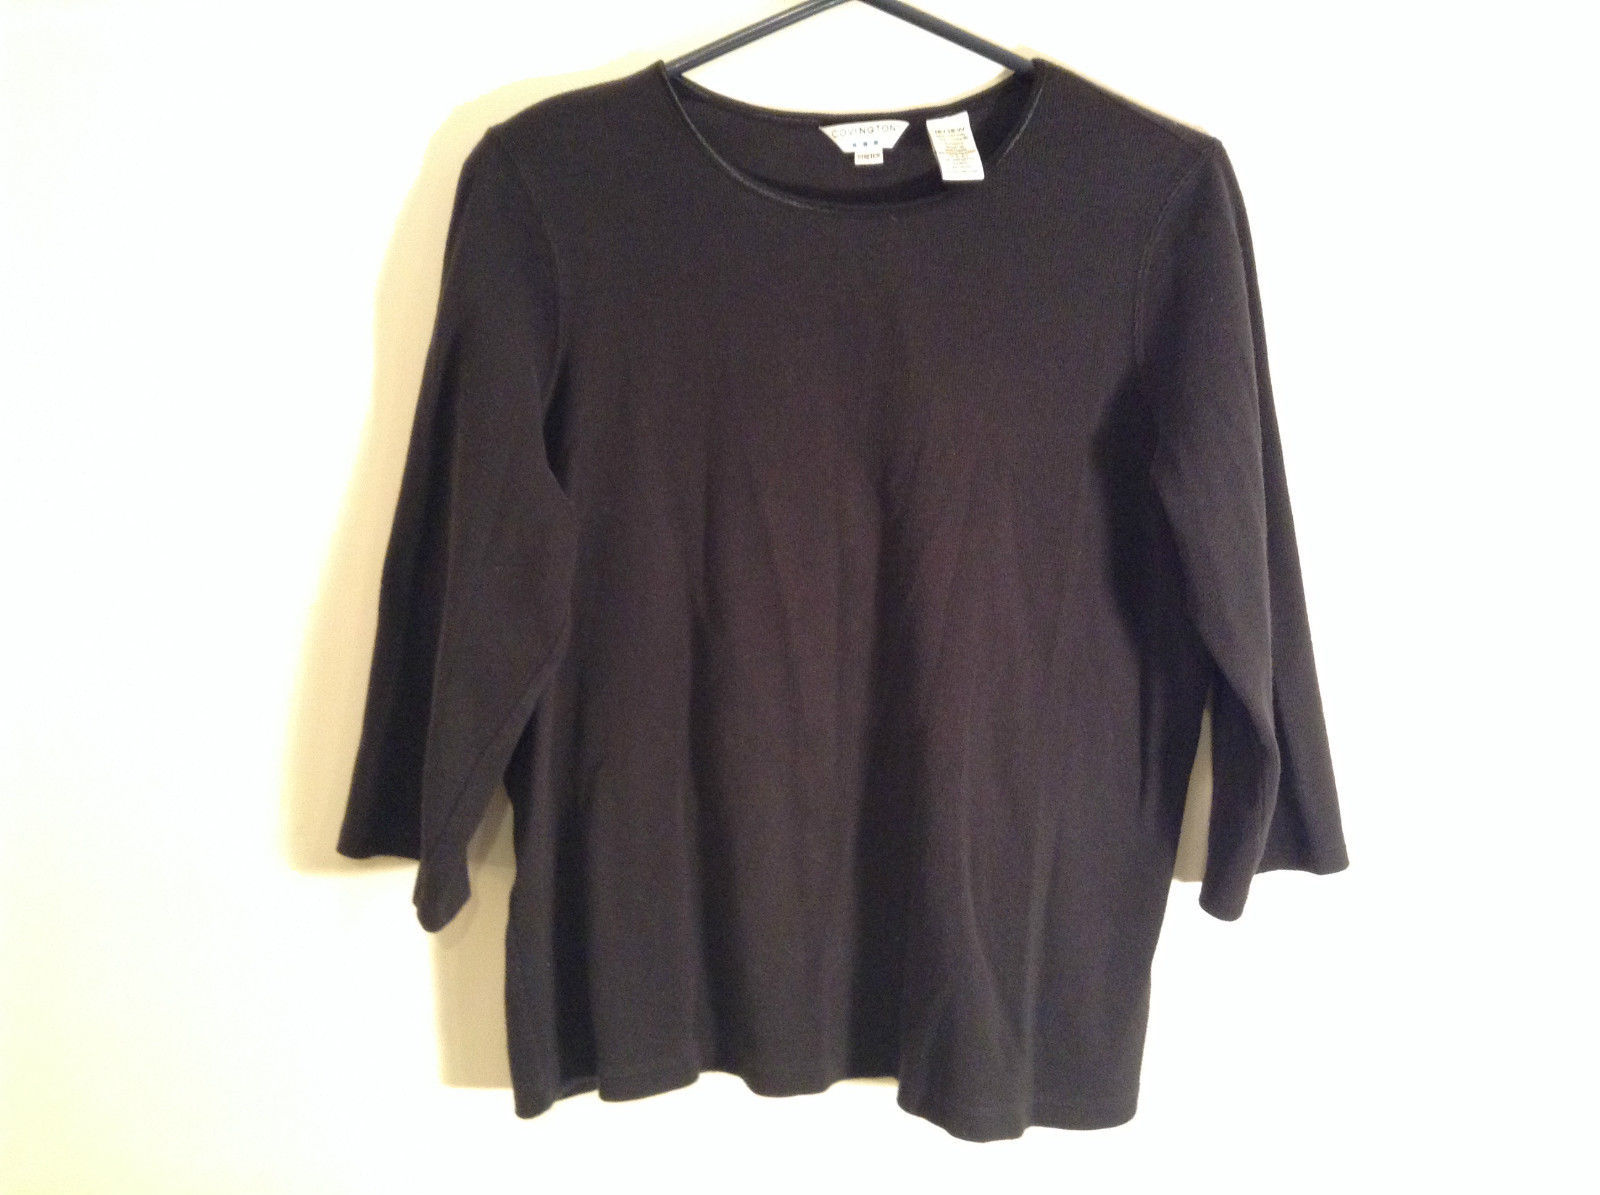 Black Covington Stretch Three Quarter Length Sleeves Sweater Size 16 to 18W